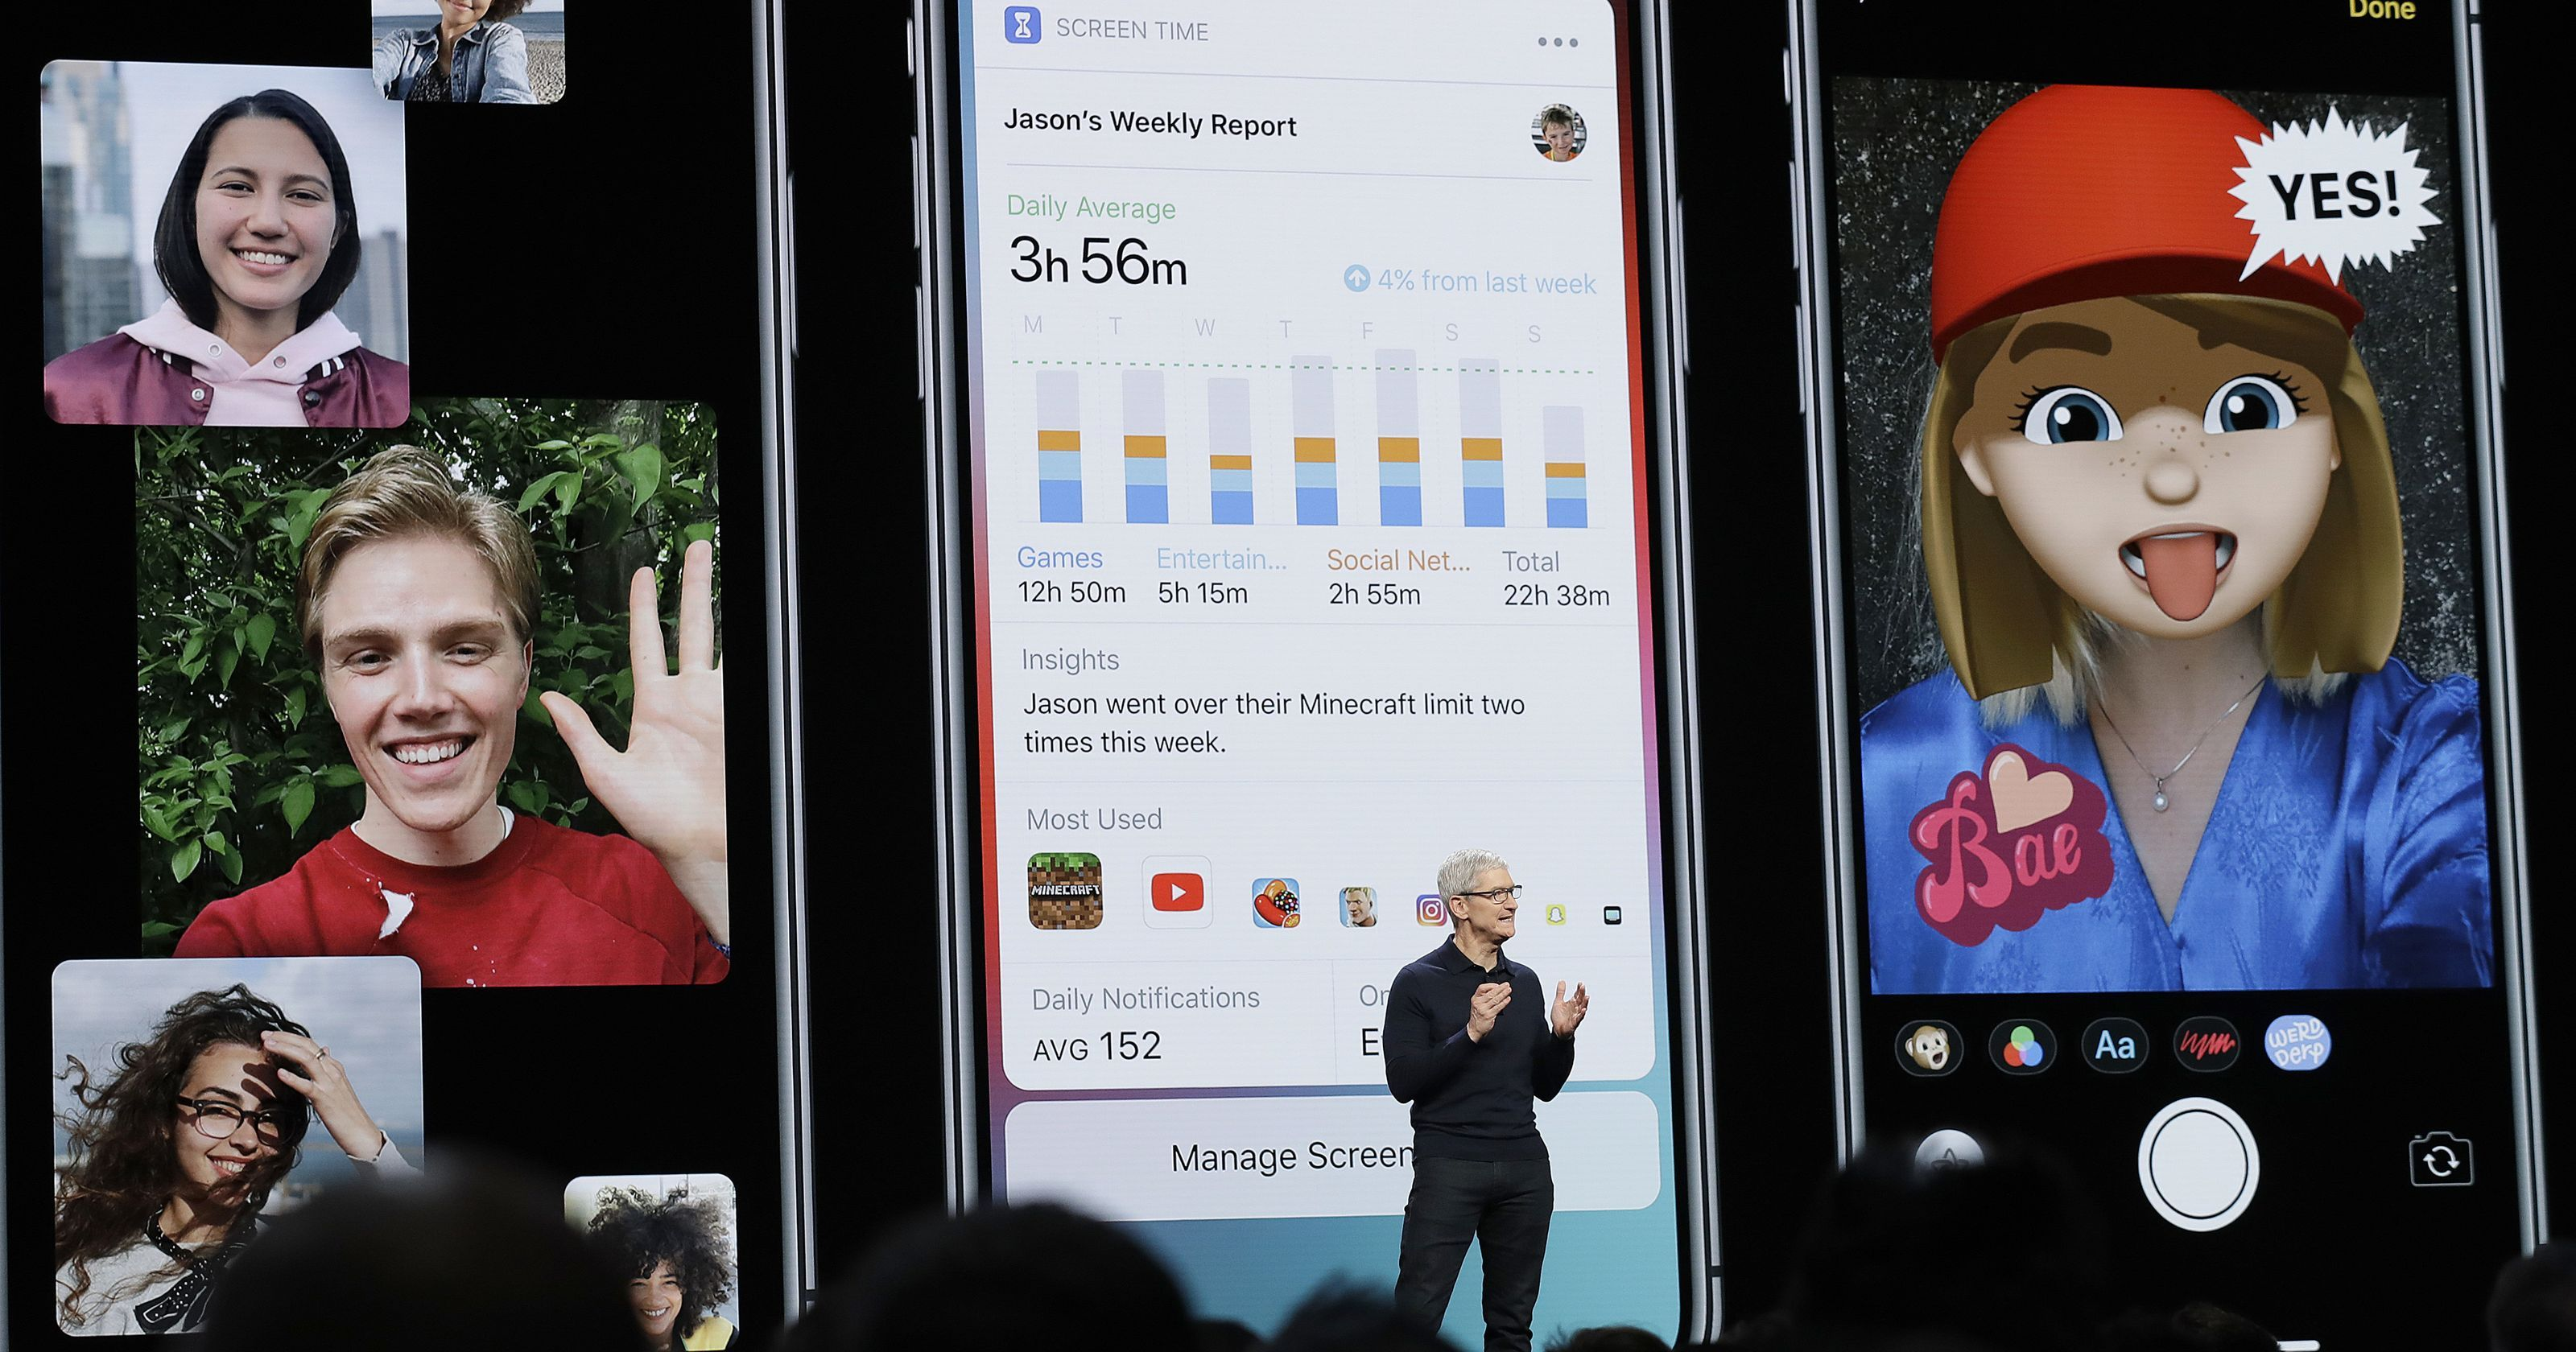 Apple at WWDC shows 7 ways iOS 12 will change your next